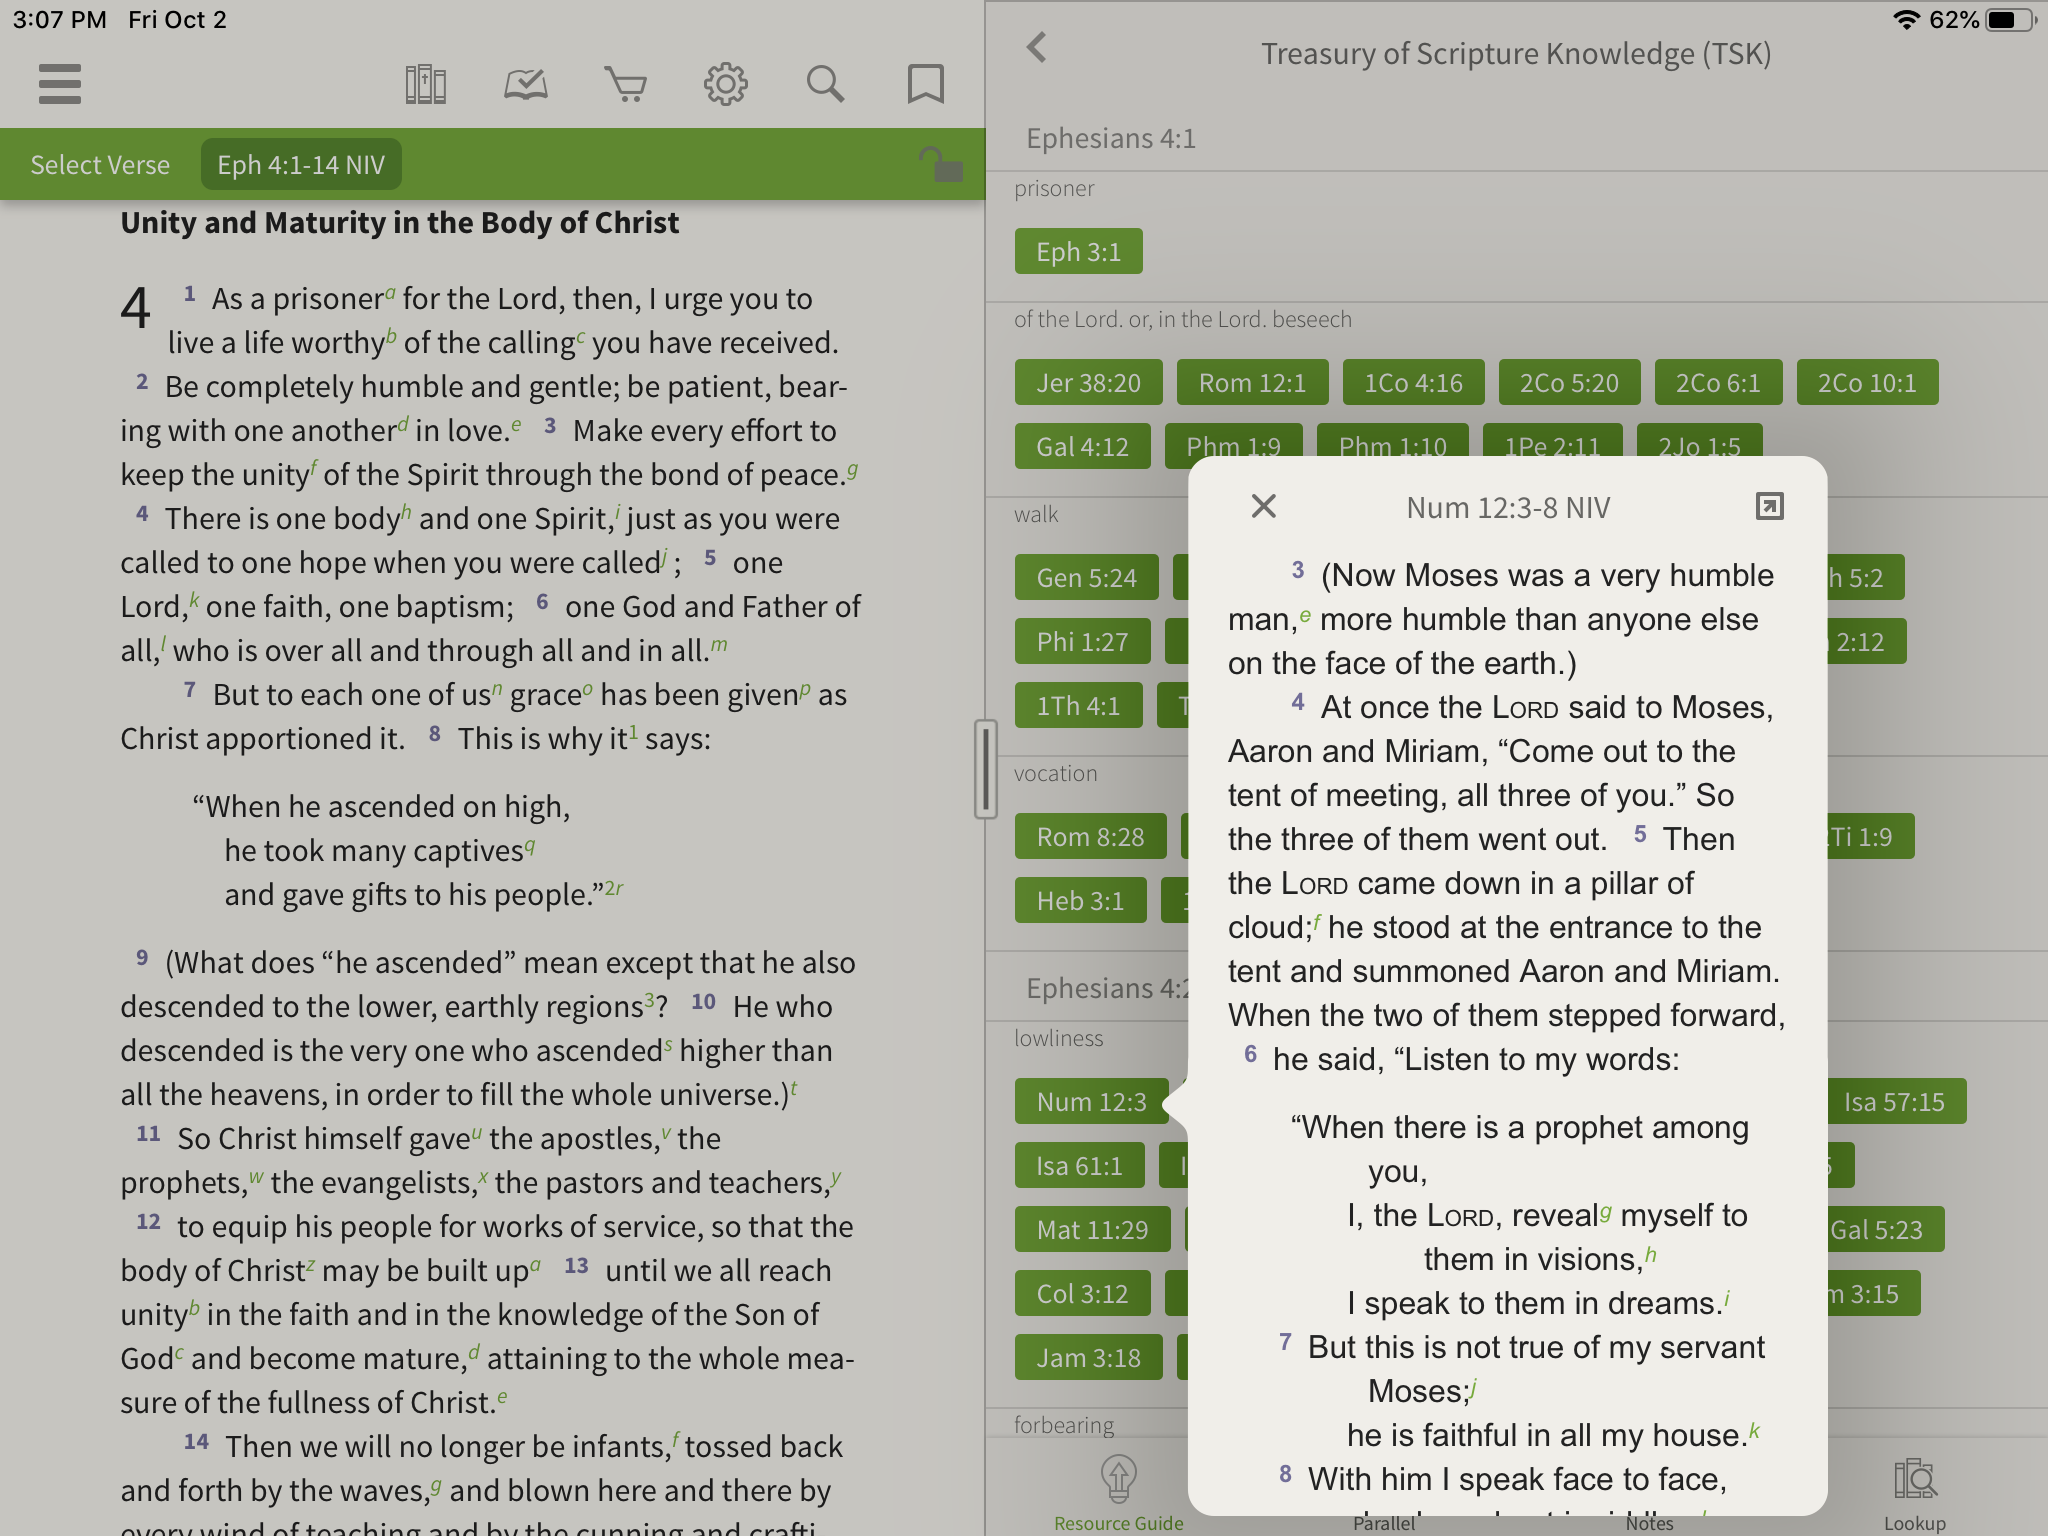 Opening a Cross Reference in the Olive Tree Bible App